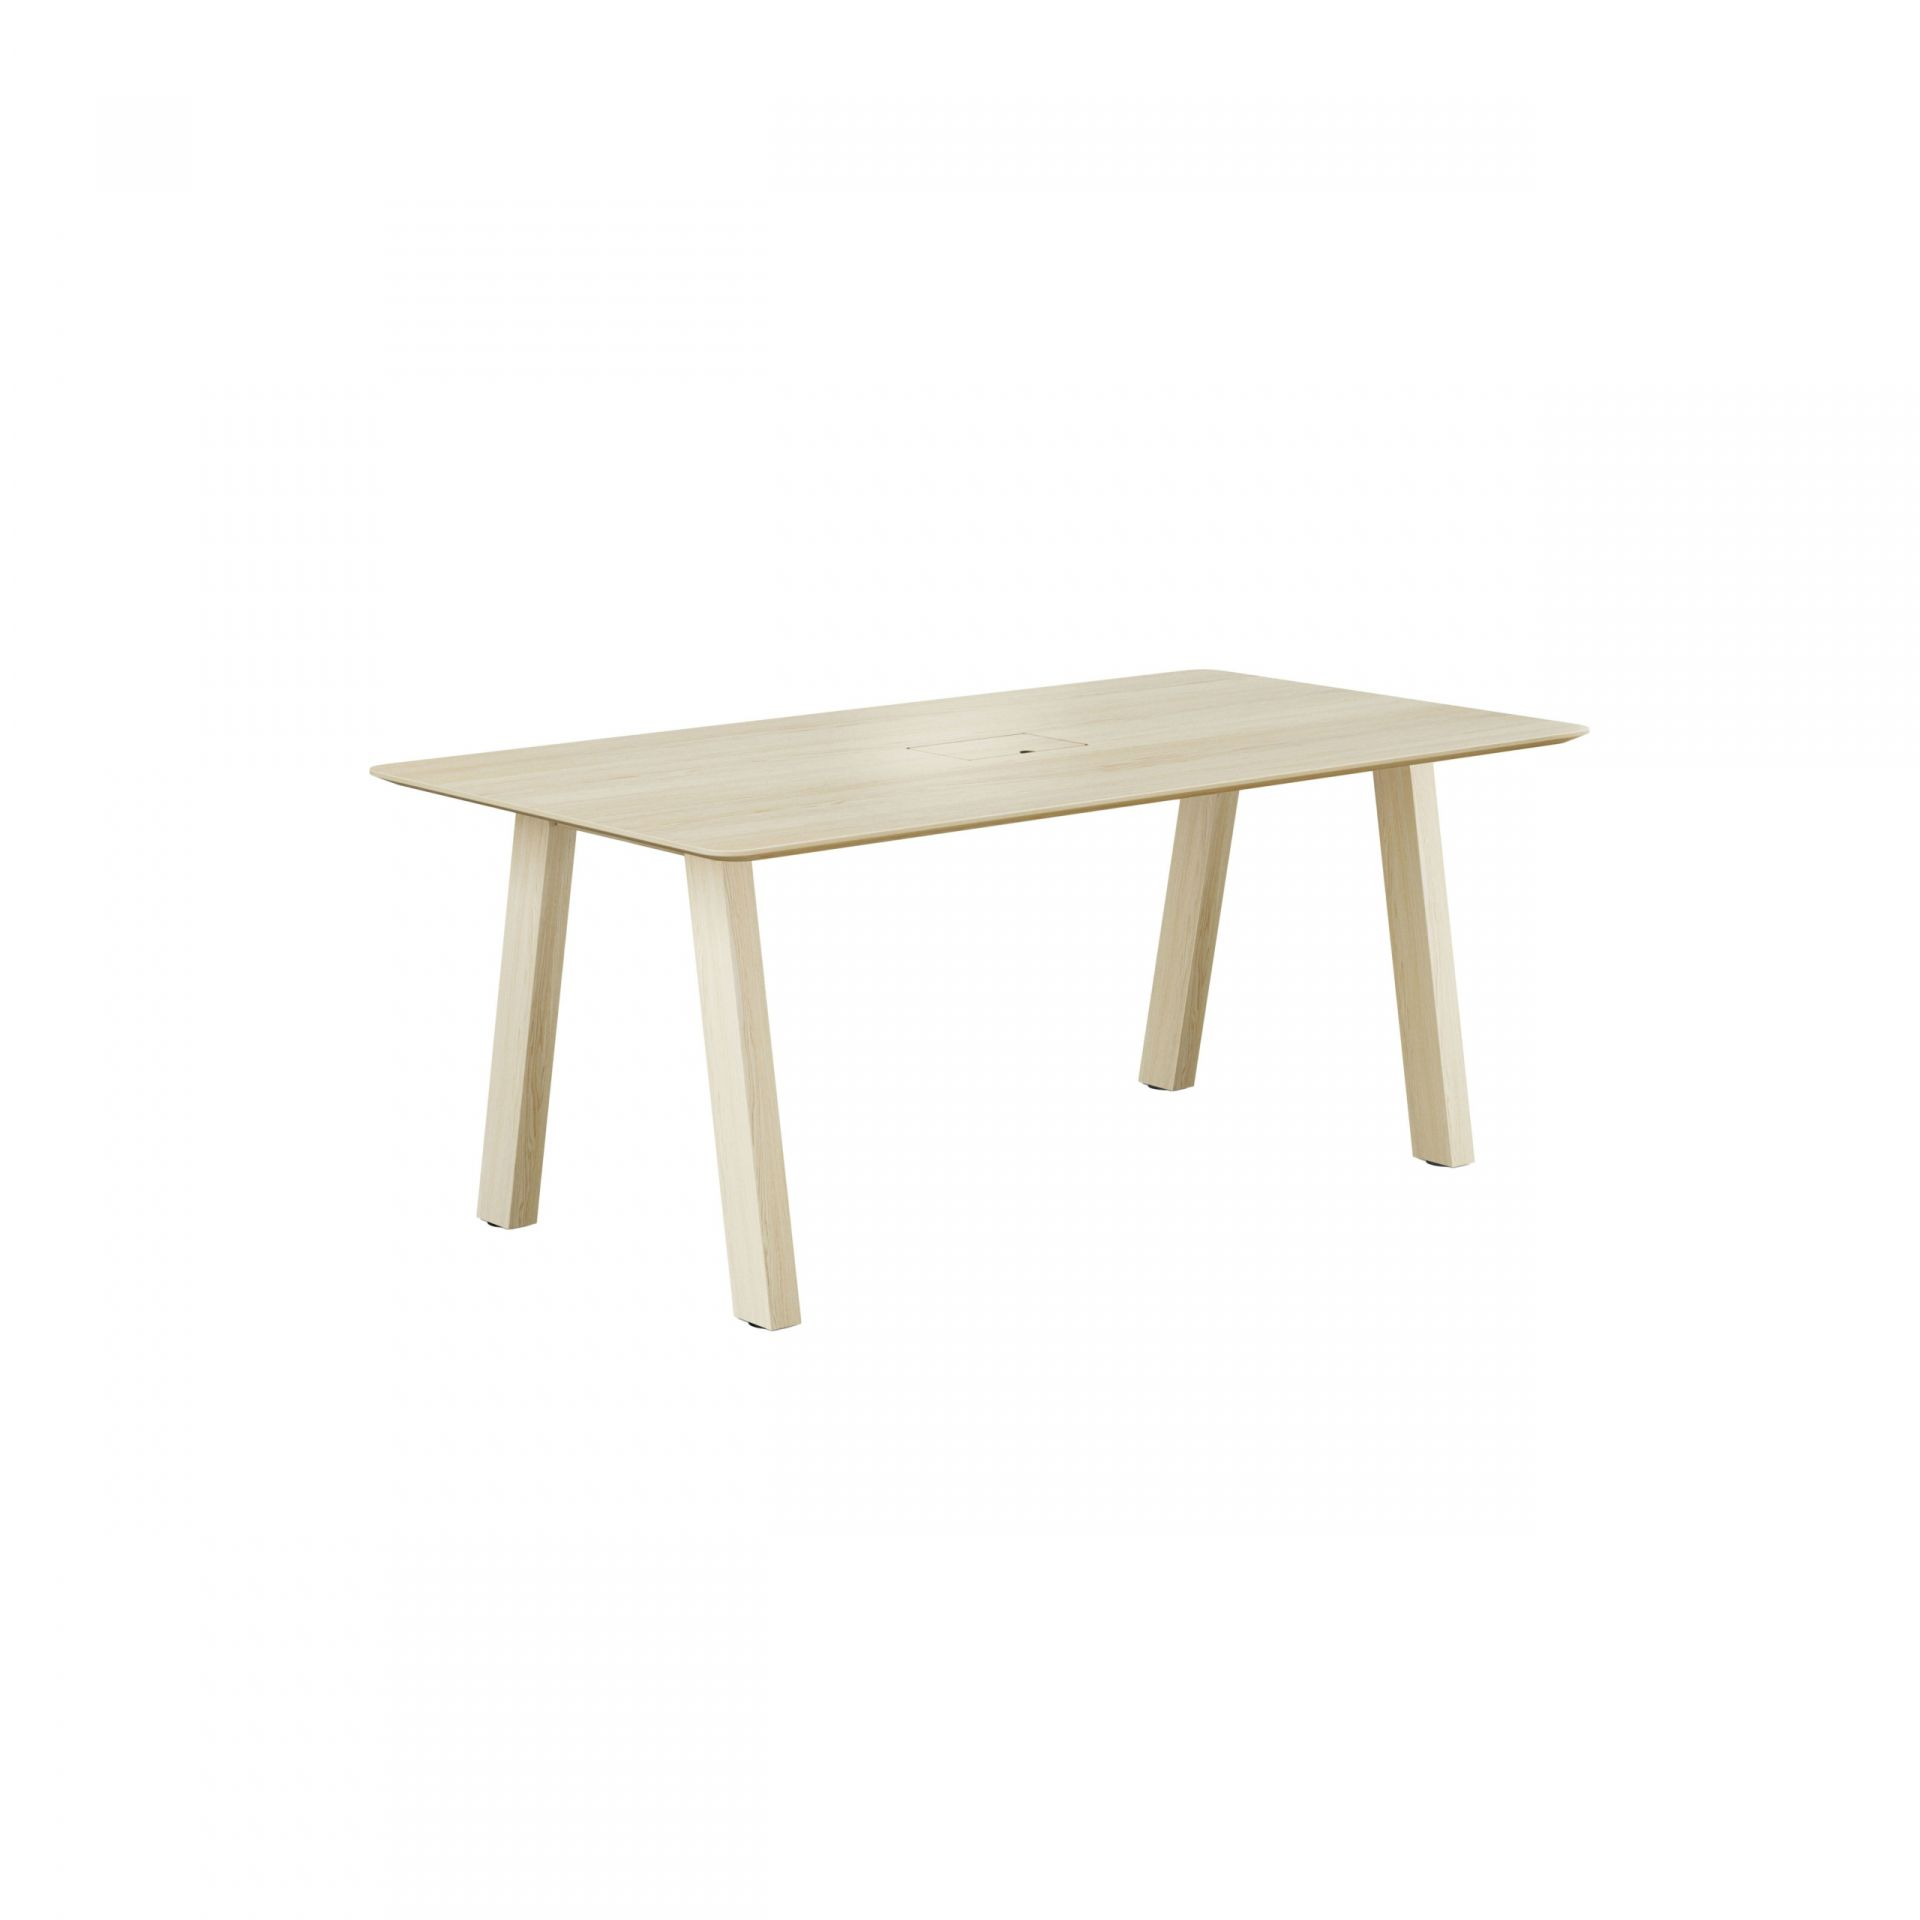 Collaborate Table with wooden legs